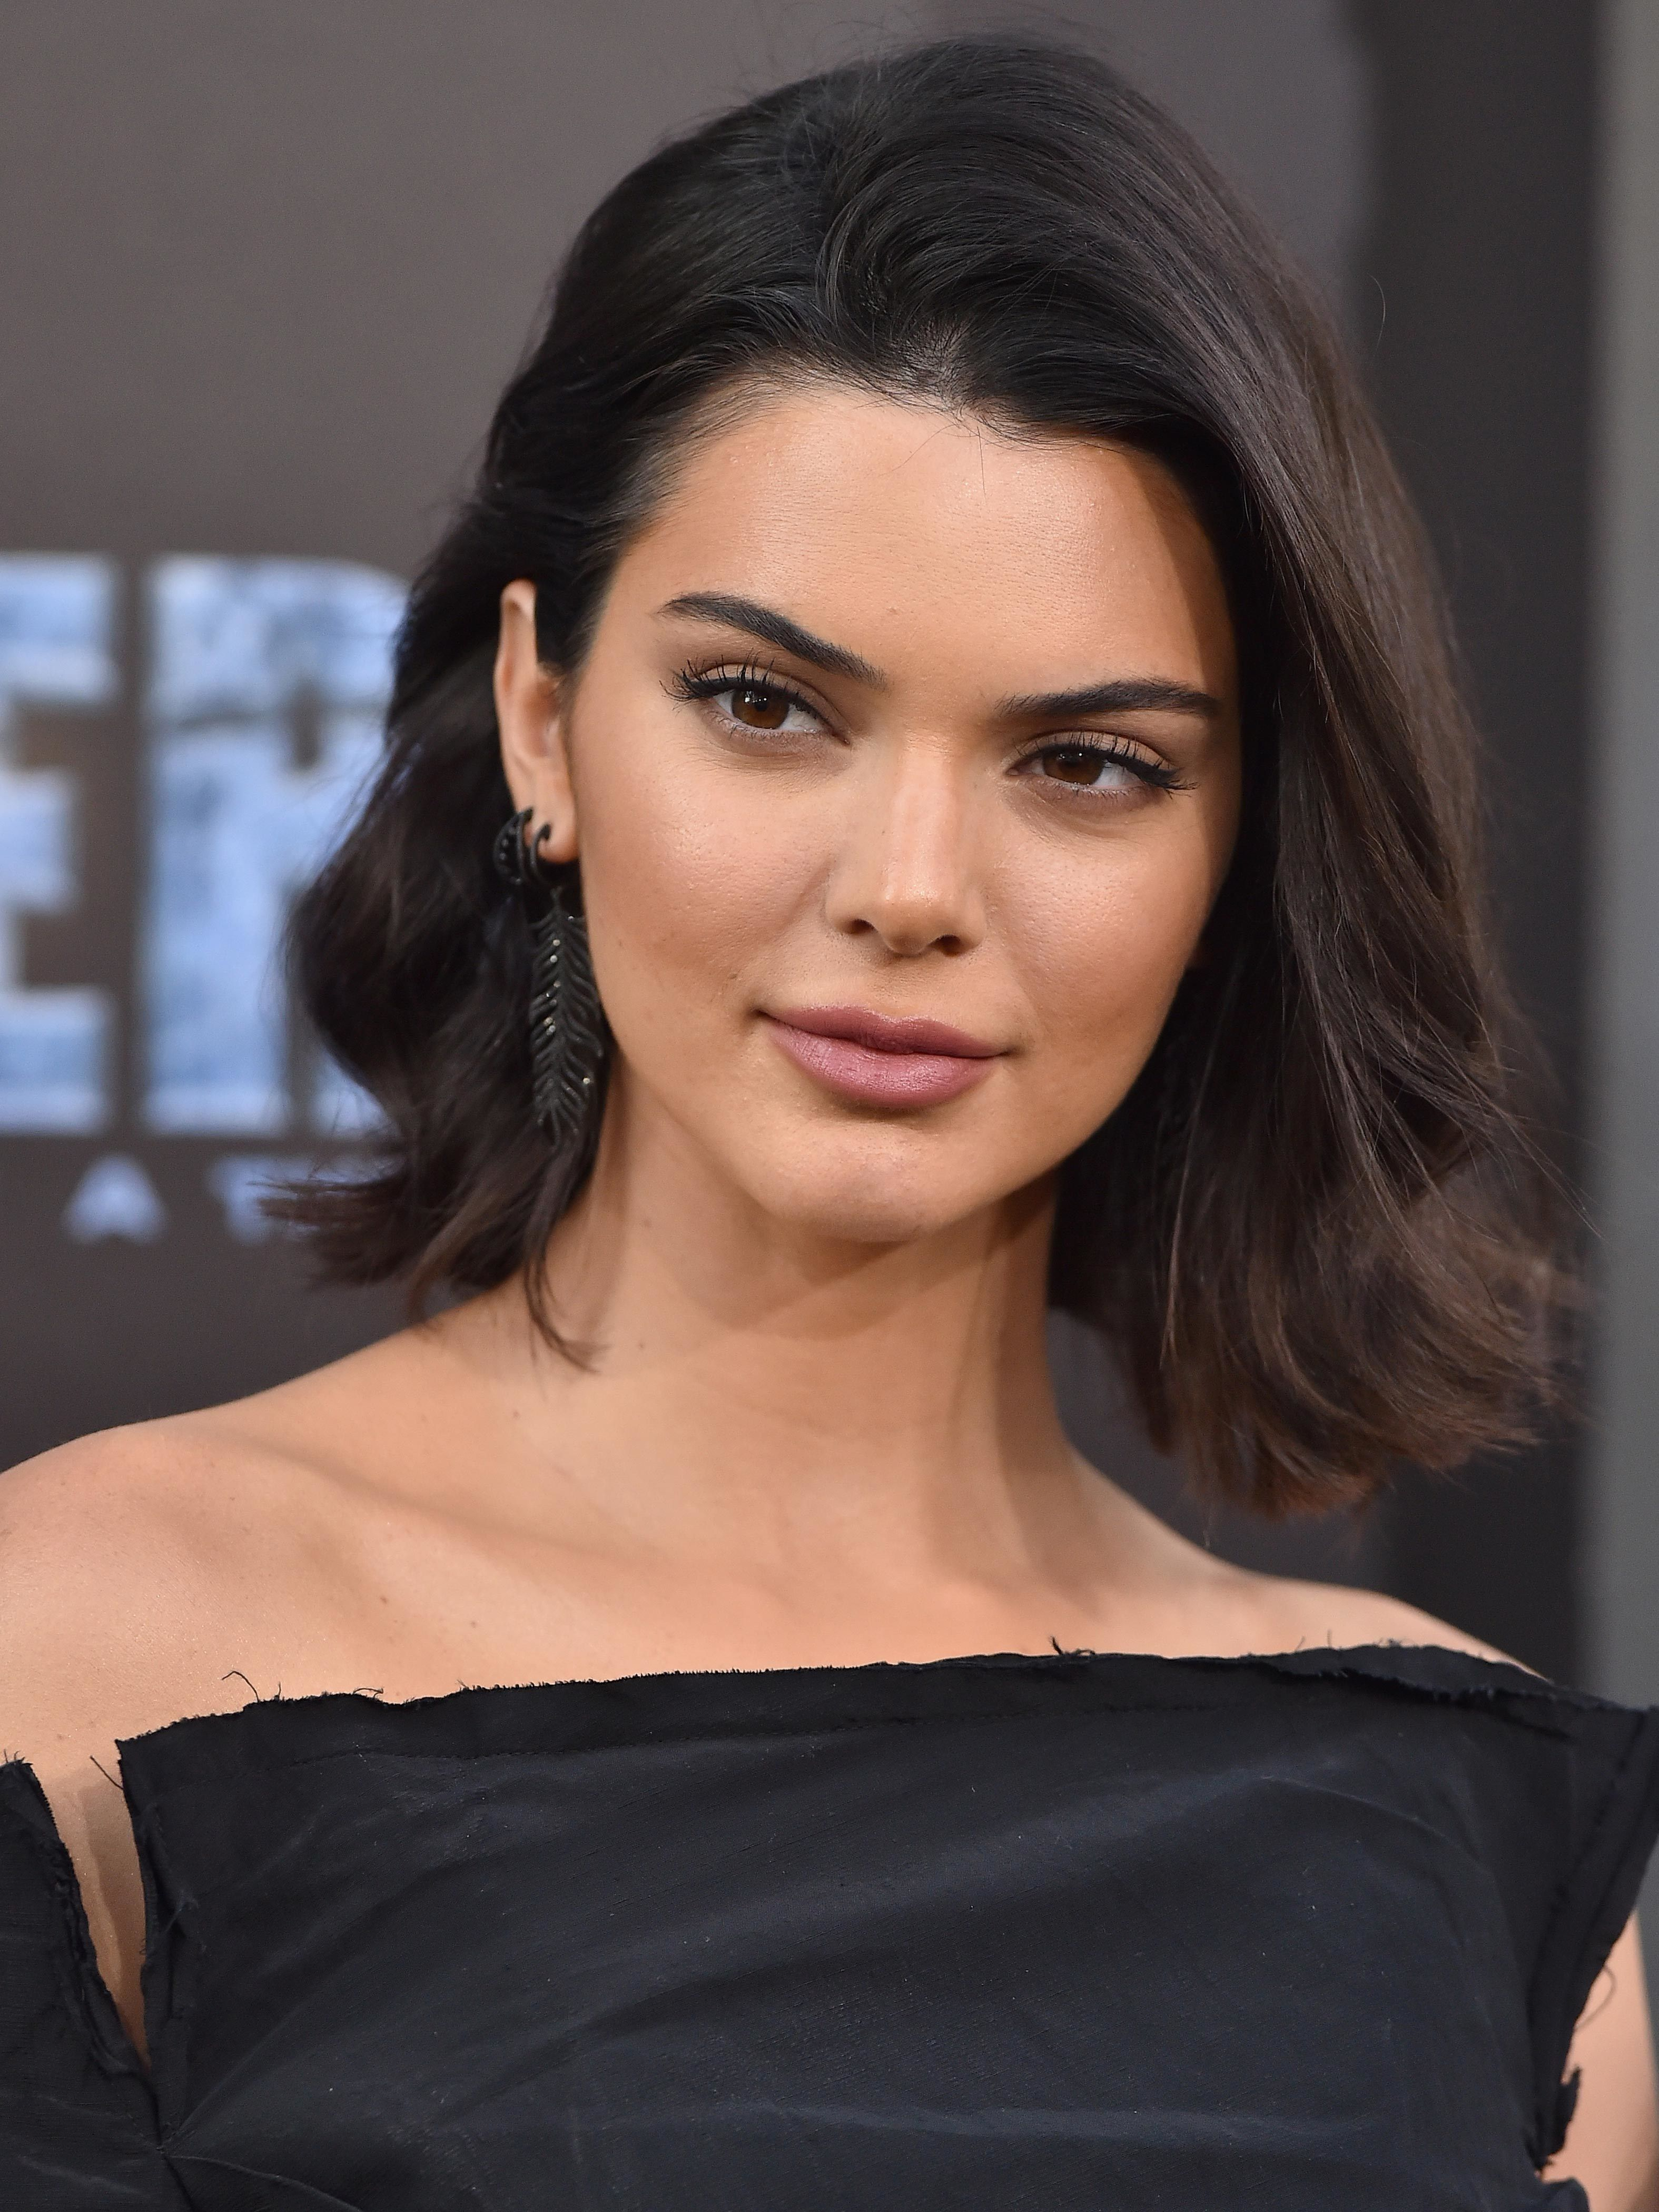 Kendall Jenner Now Has a Pixie Cut — And She Looks EXACTLY Like Kris